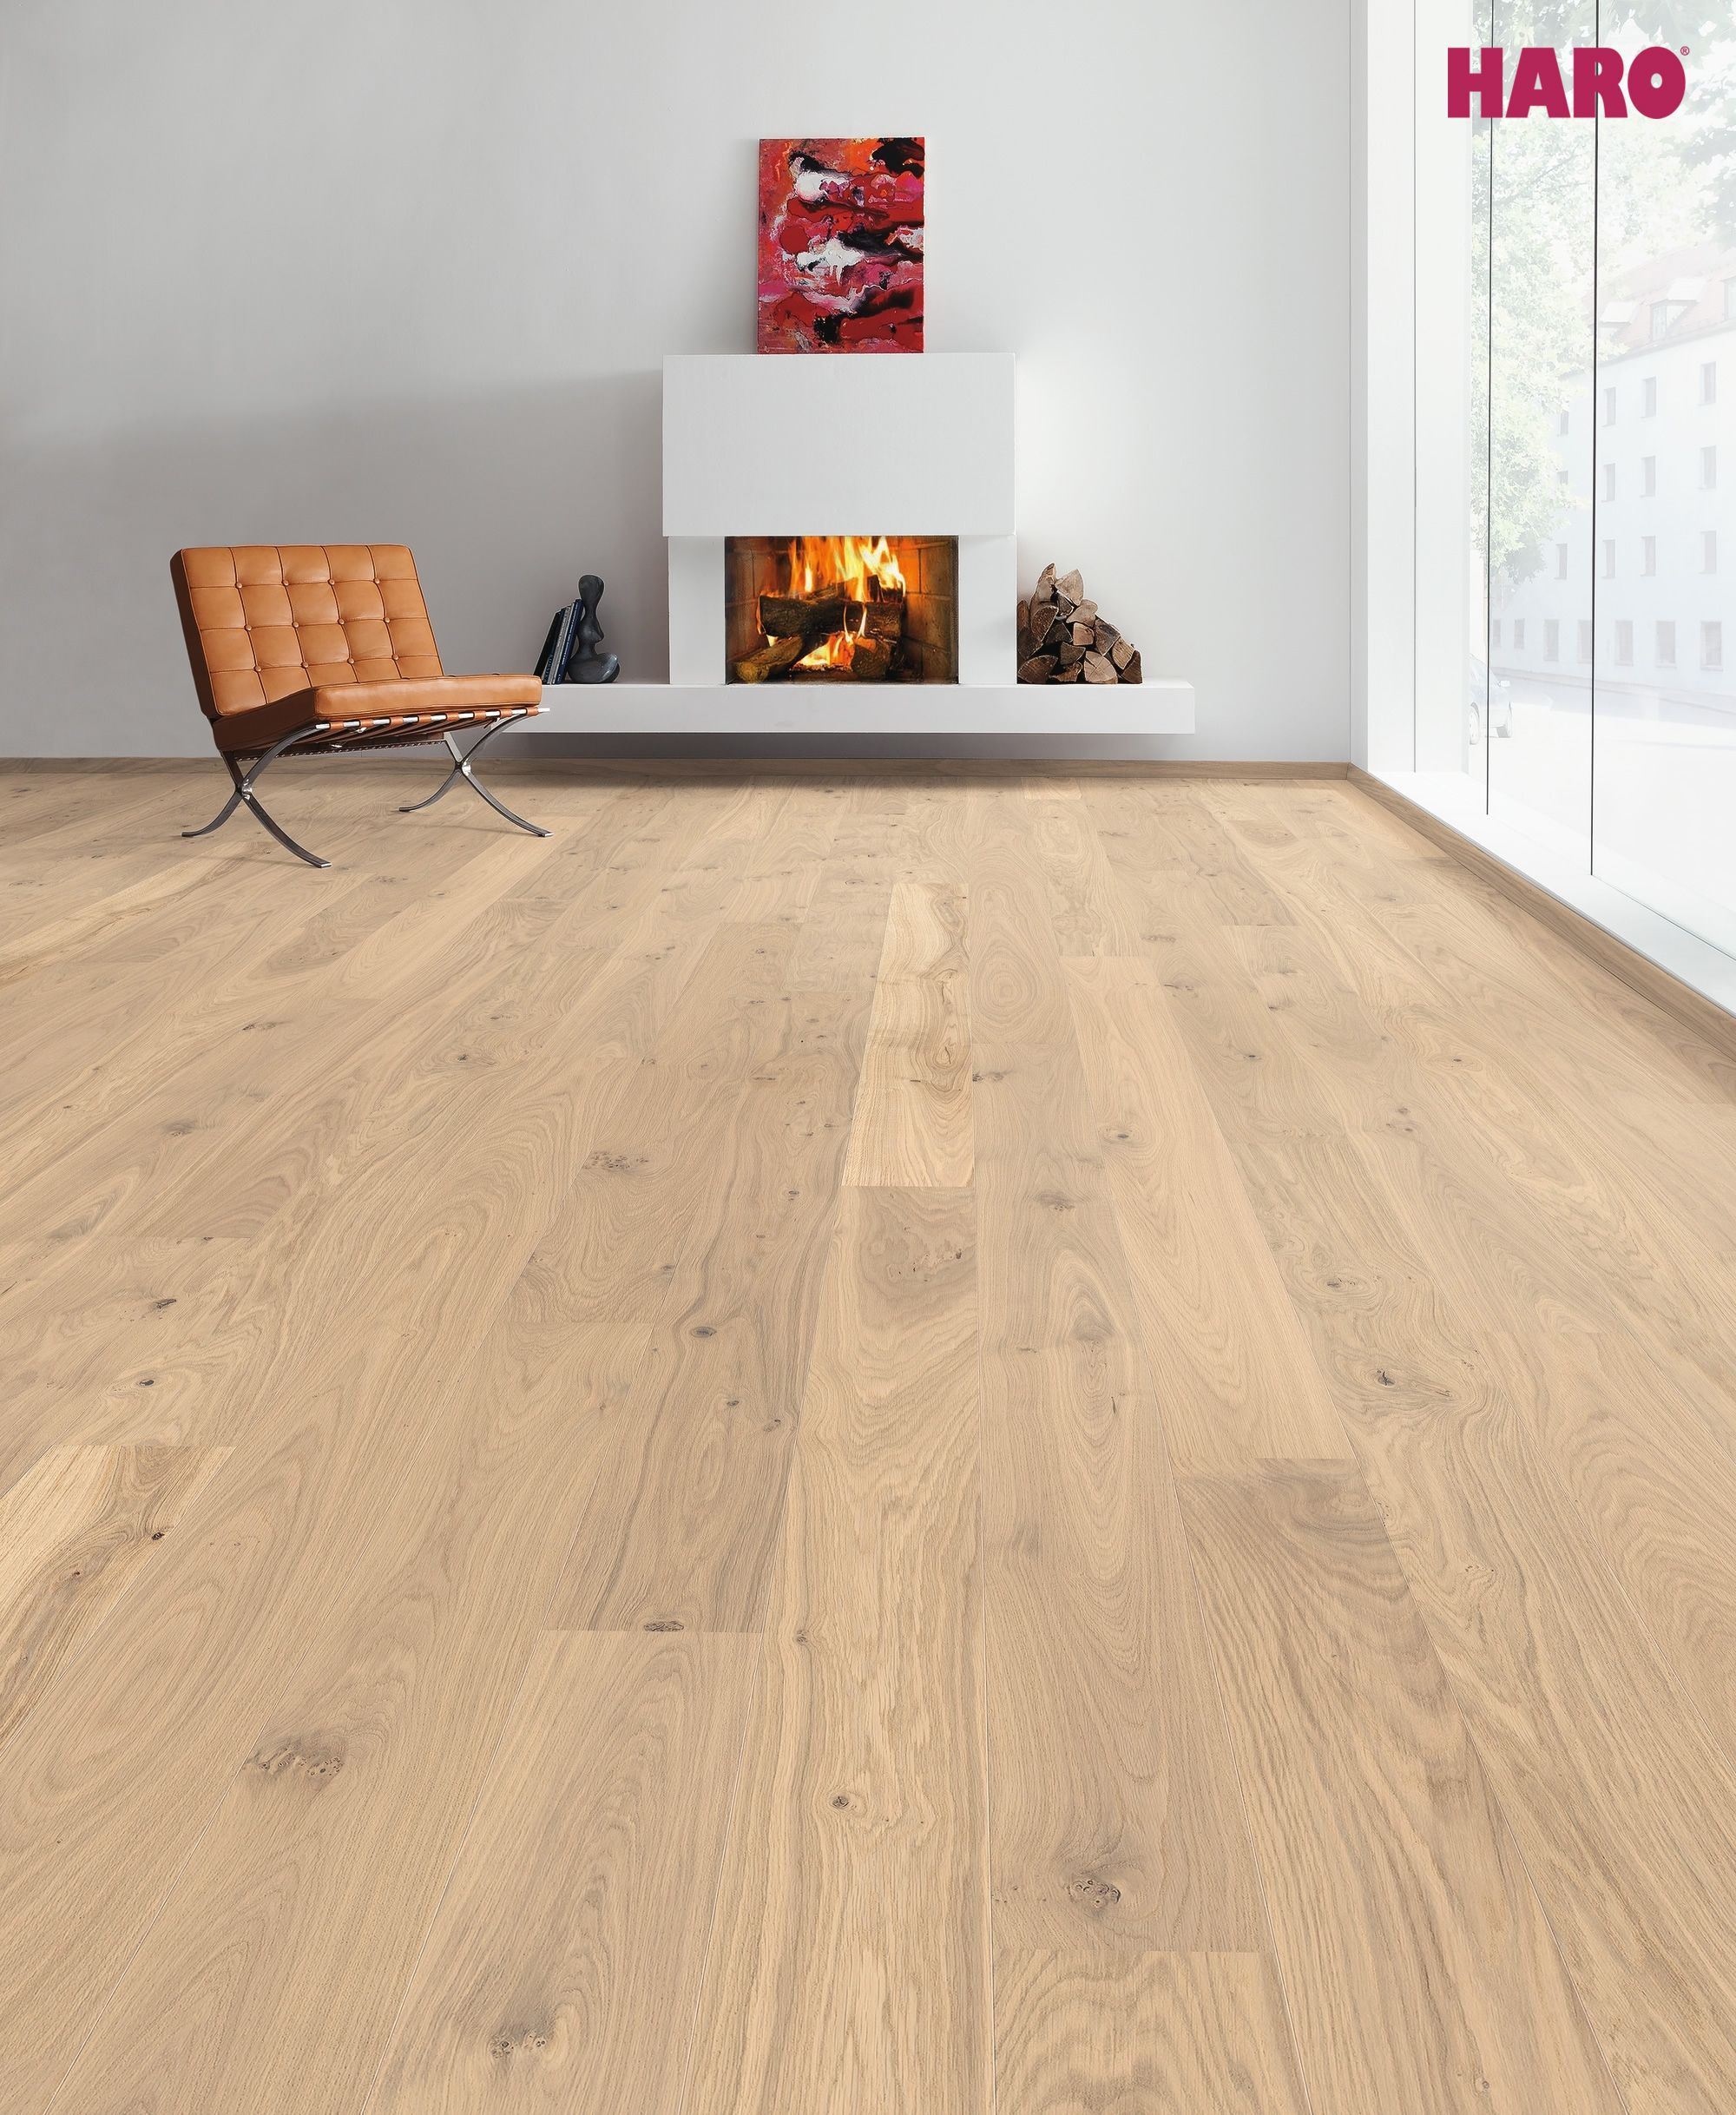 Superb NovaBell Ceramica   HL Keramik A/S | Træ Look / Wooden Tile | Pinterest Pictures